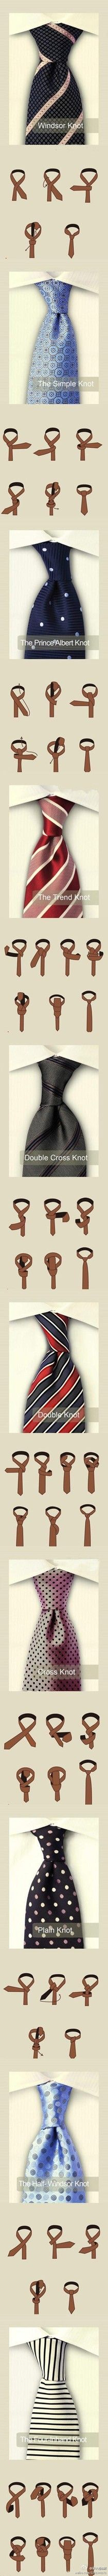 how could there possibly be this many ways to tie a tie?